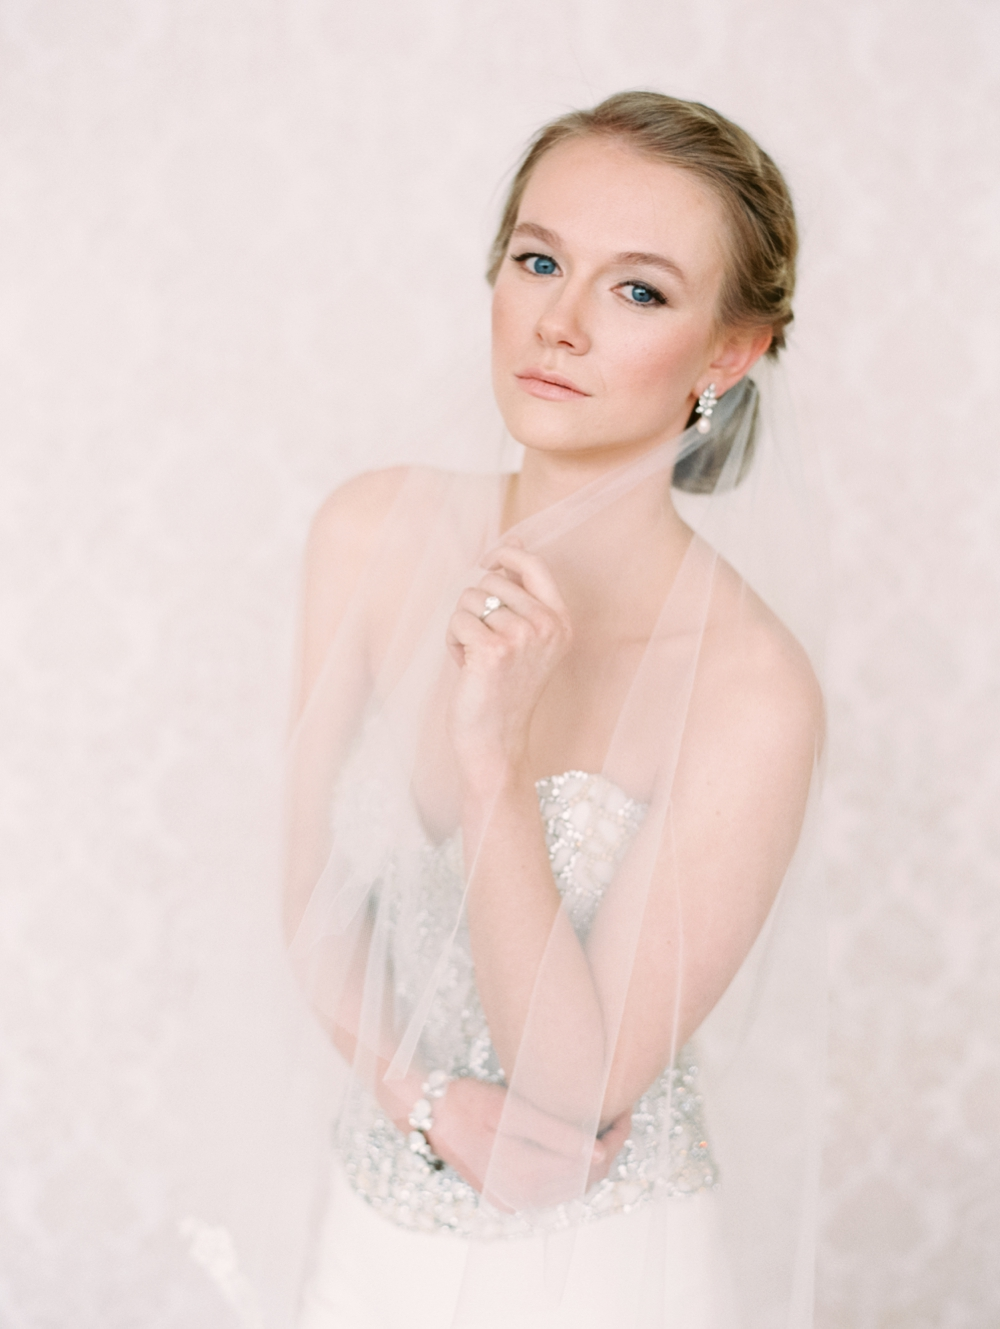 Calgary wedding photographers | bridal look book 2016 | Bridal boutique yyc | editorial photography